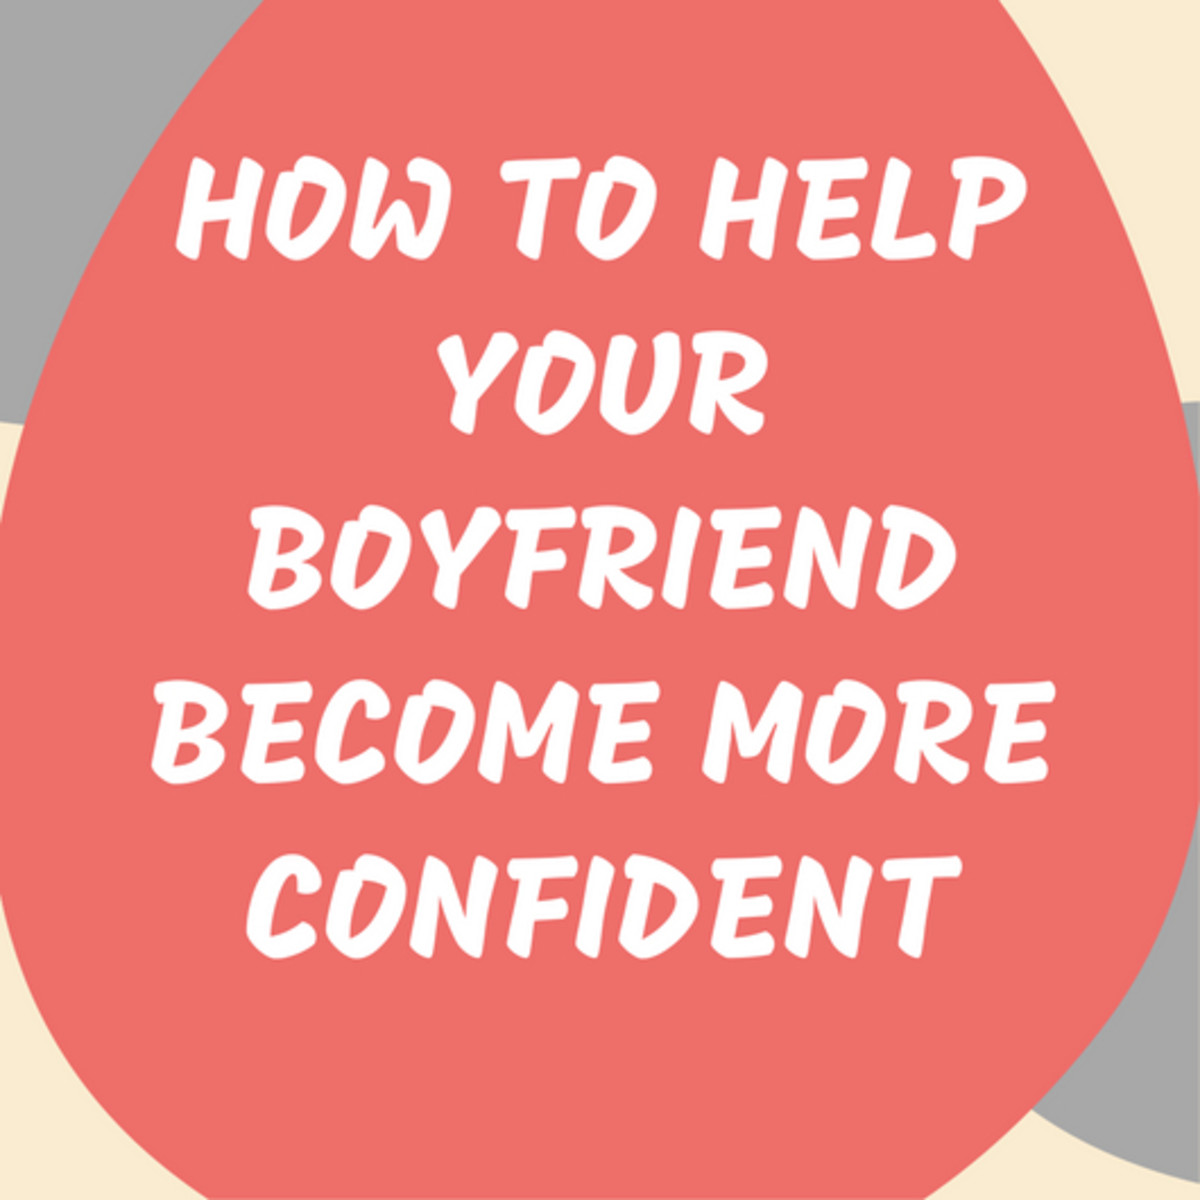 How to Make Your Boyfriend More Confident: Getting a Shy Guy out of His Shell